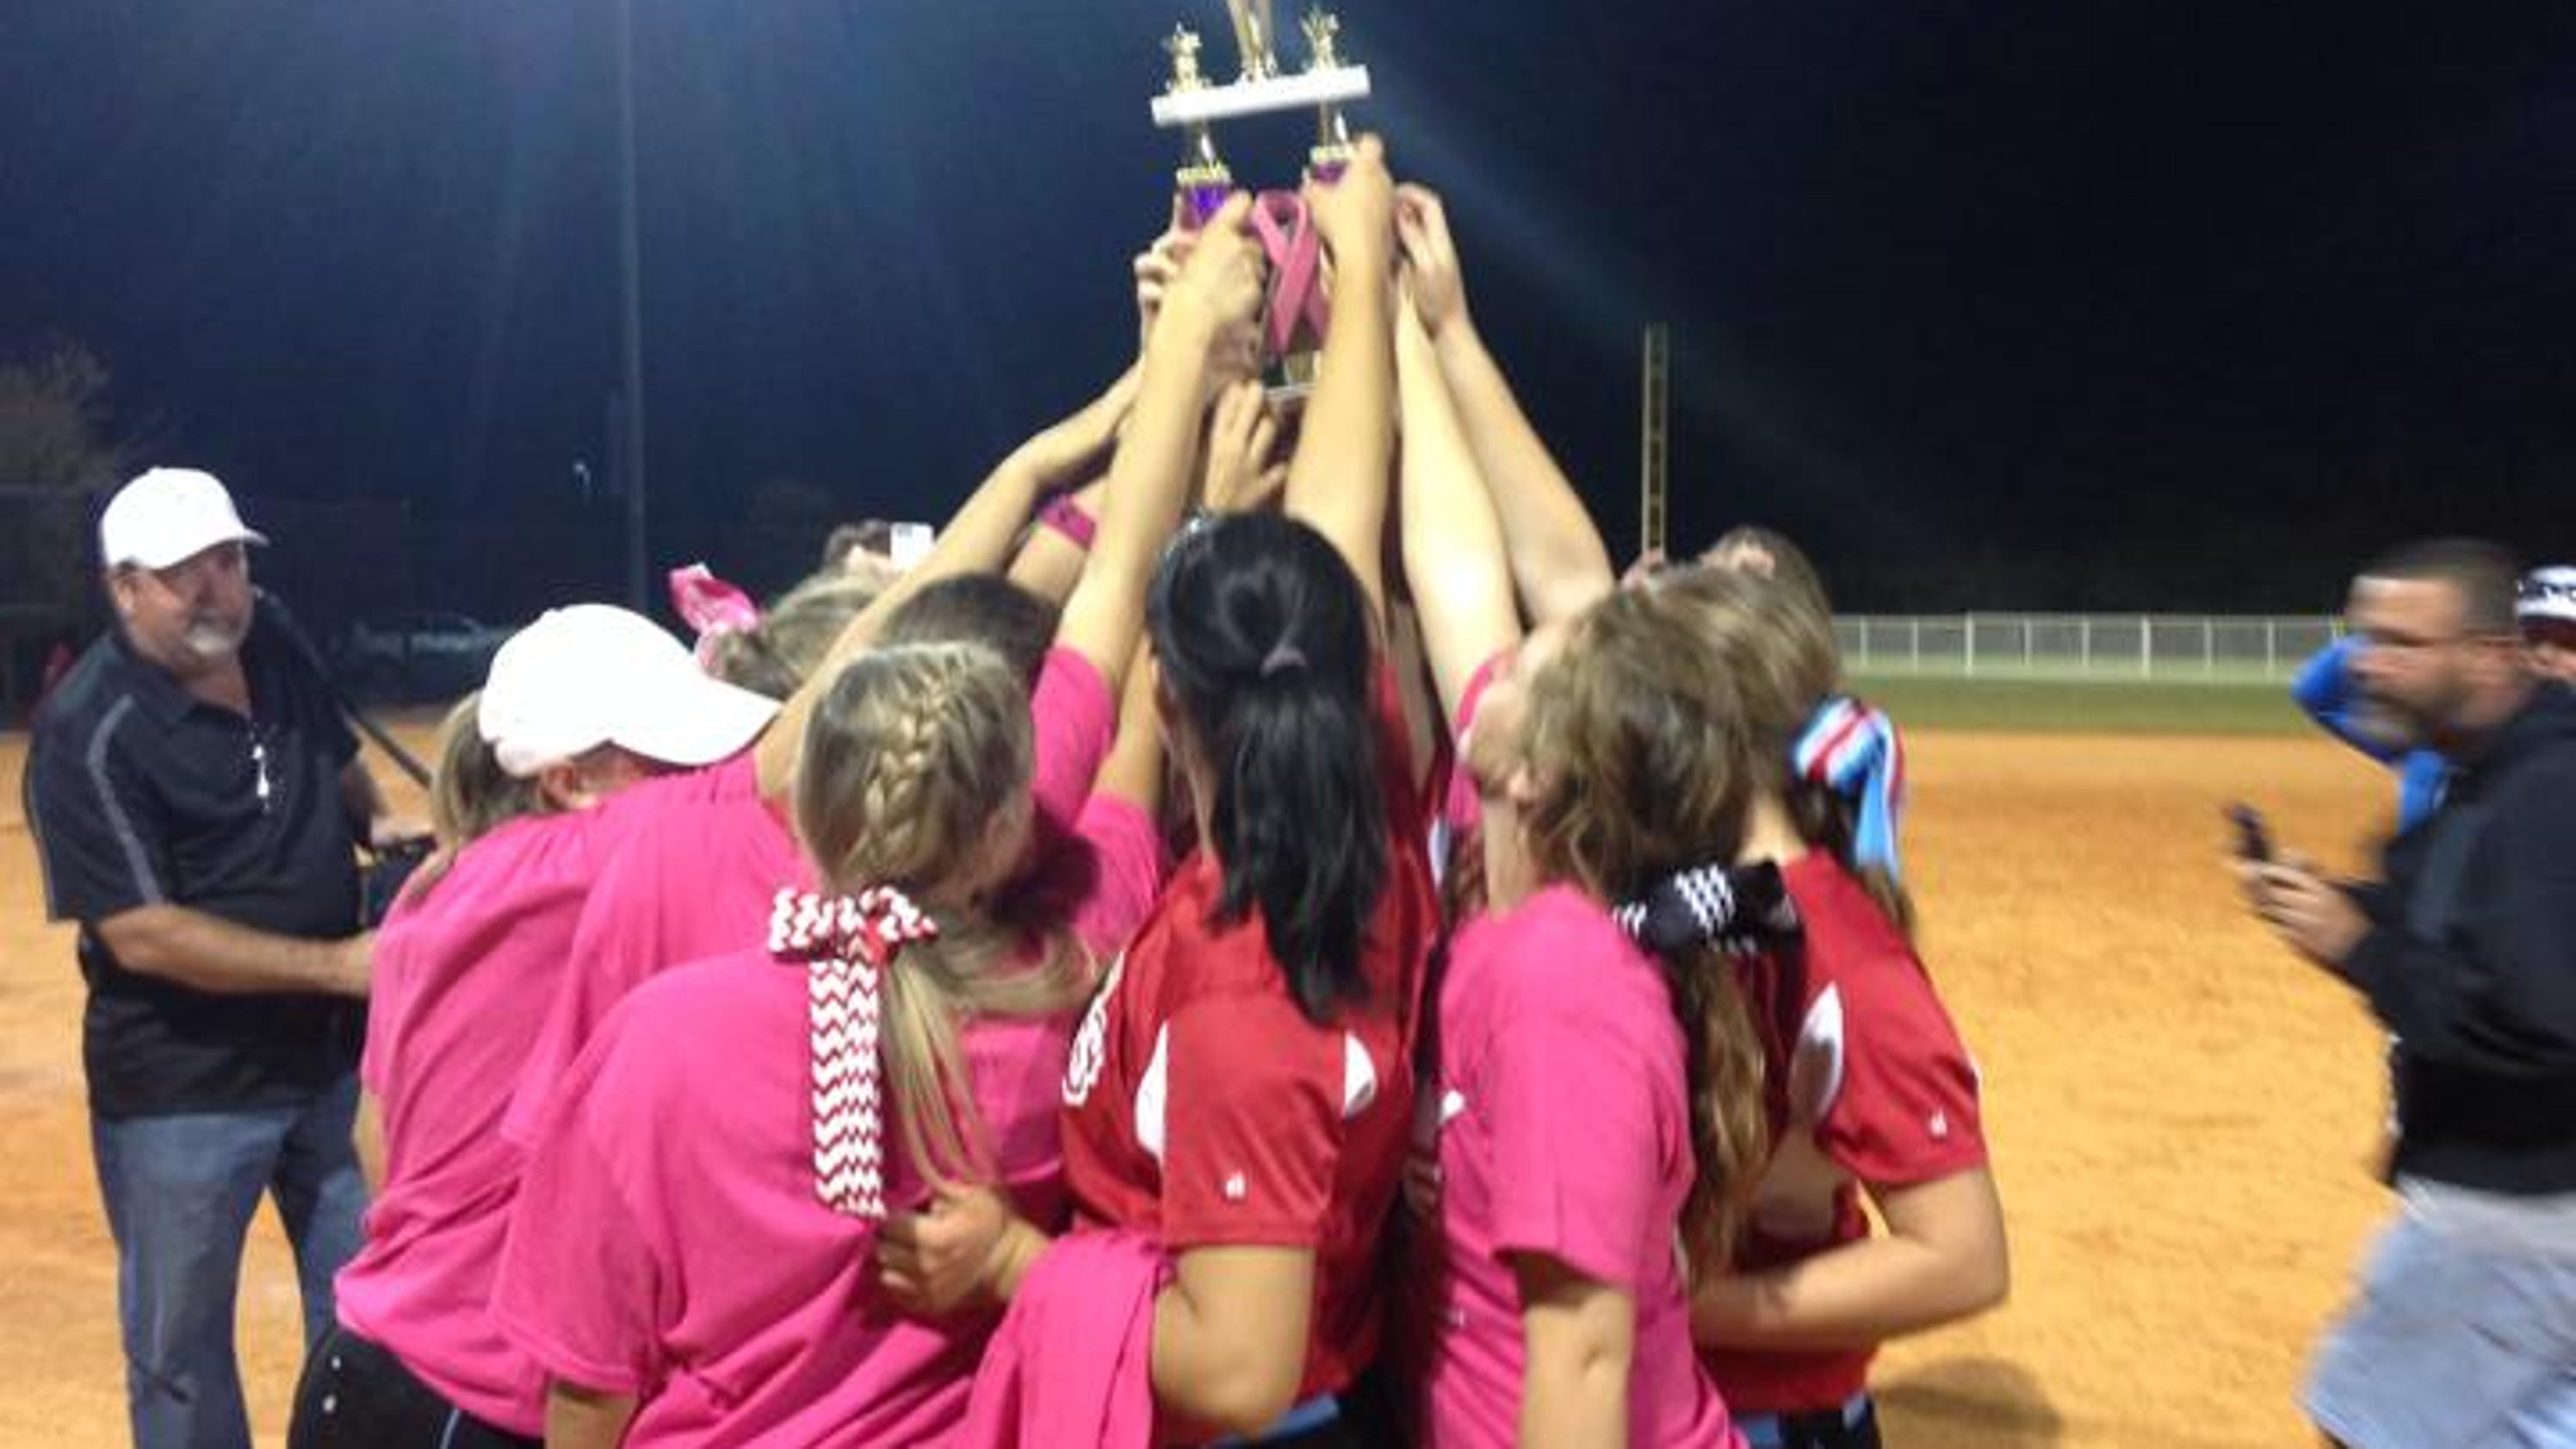 TRAVEL SOFTBALL Express Wants To Put Elite Players In College